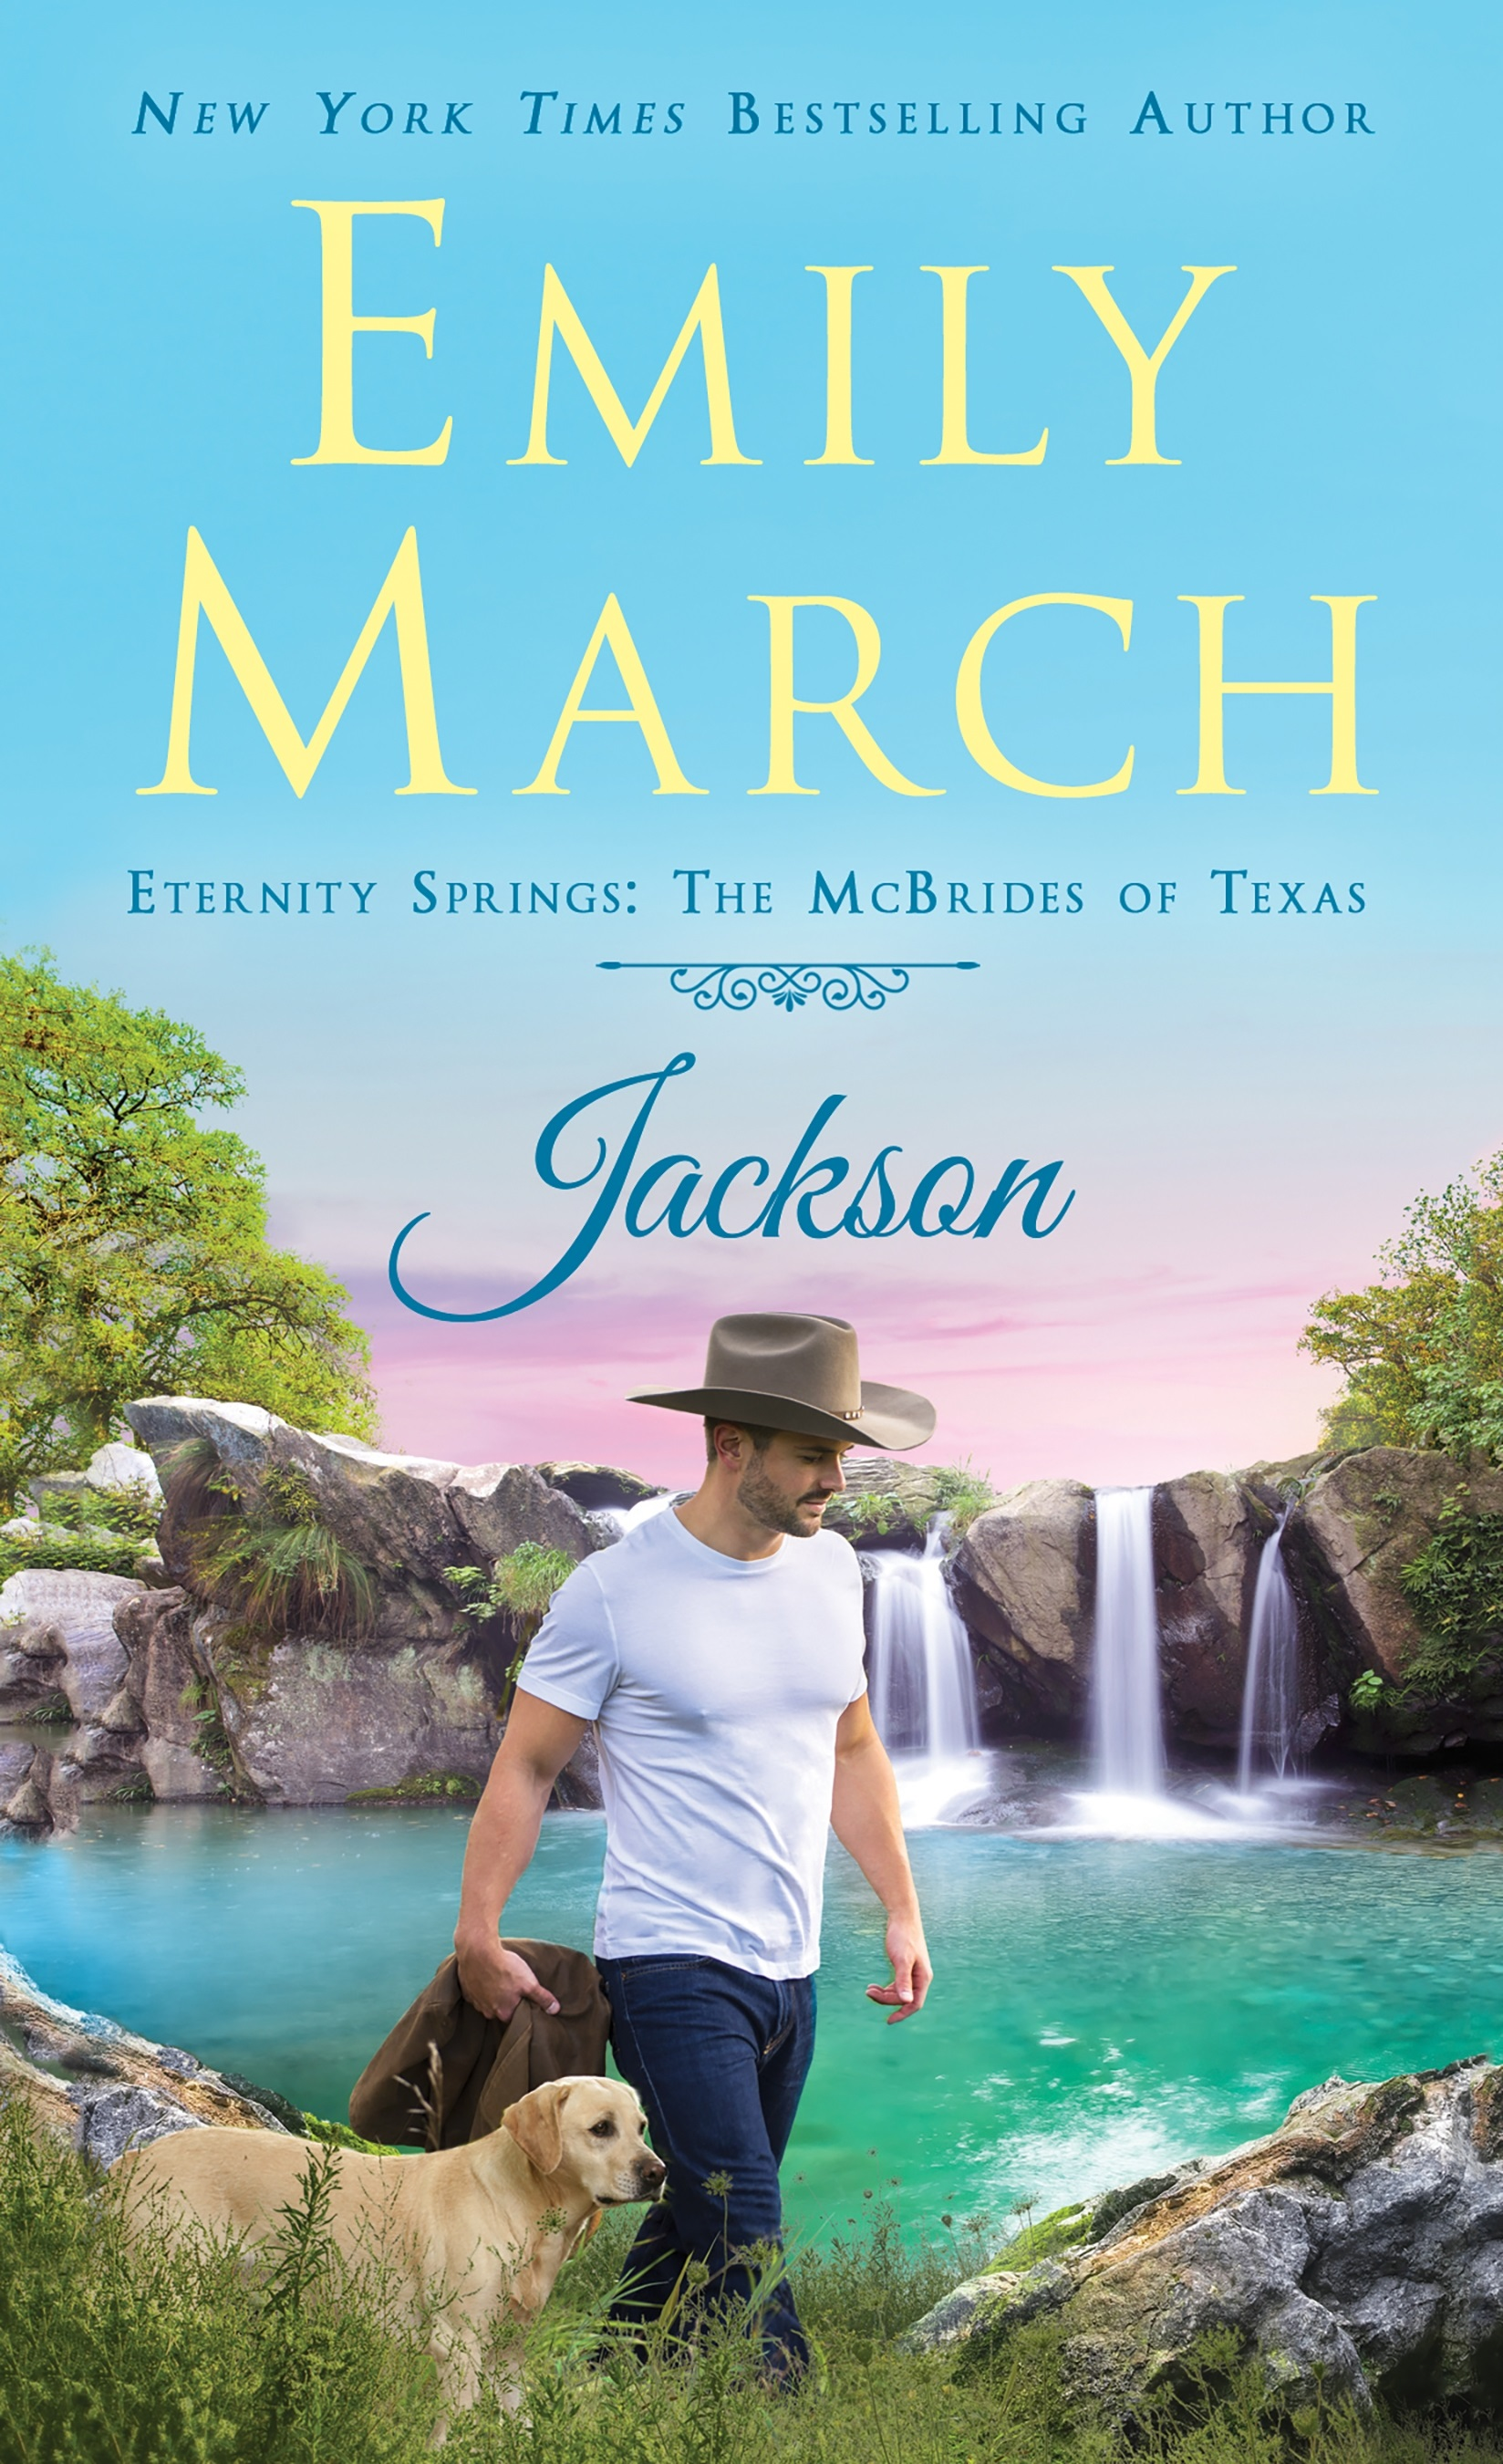 Copy of Jackson cover